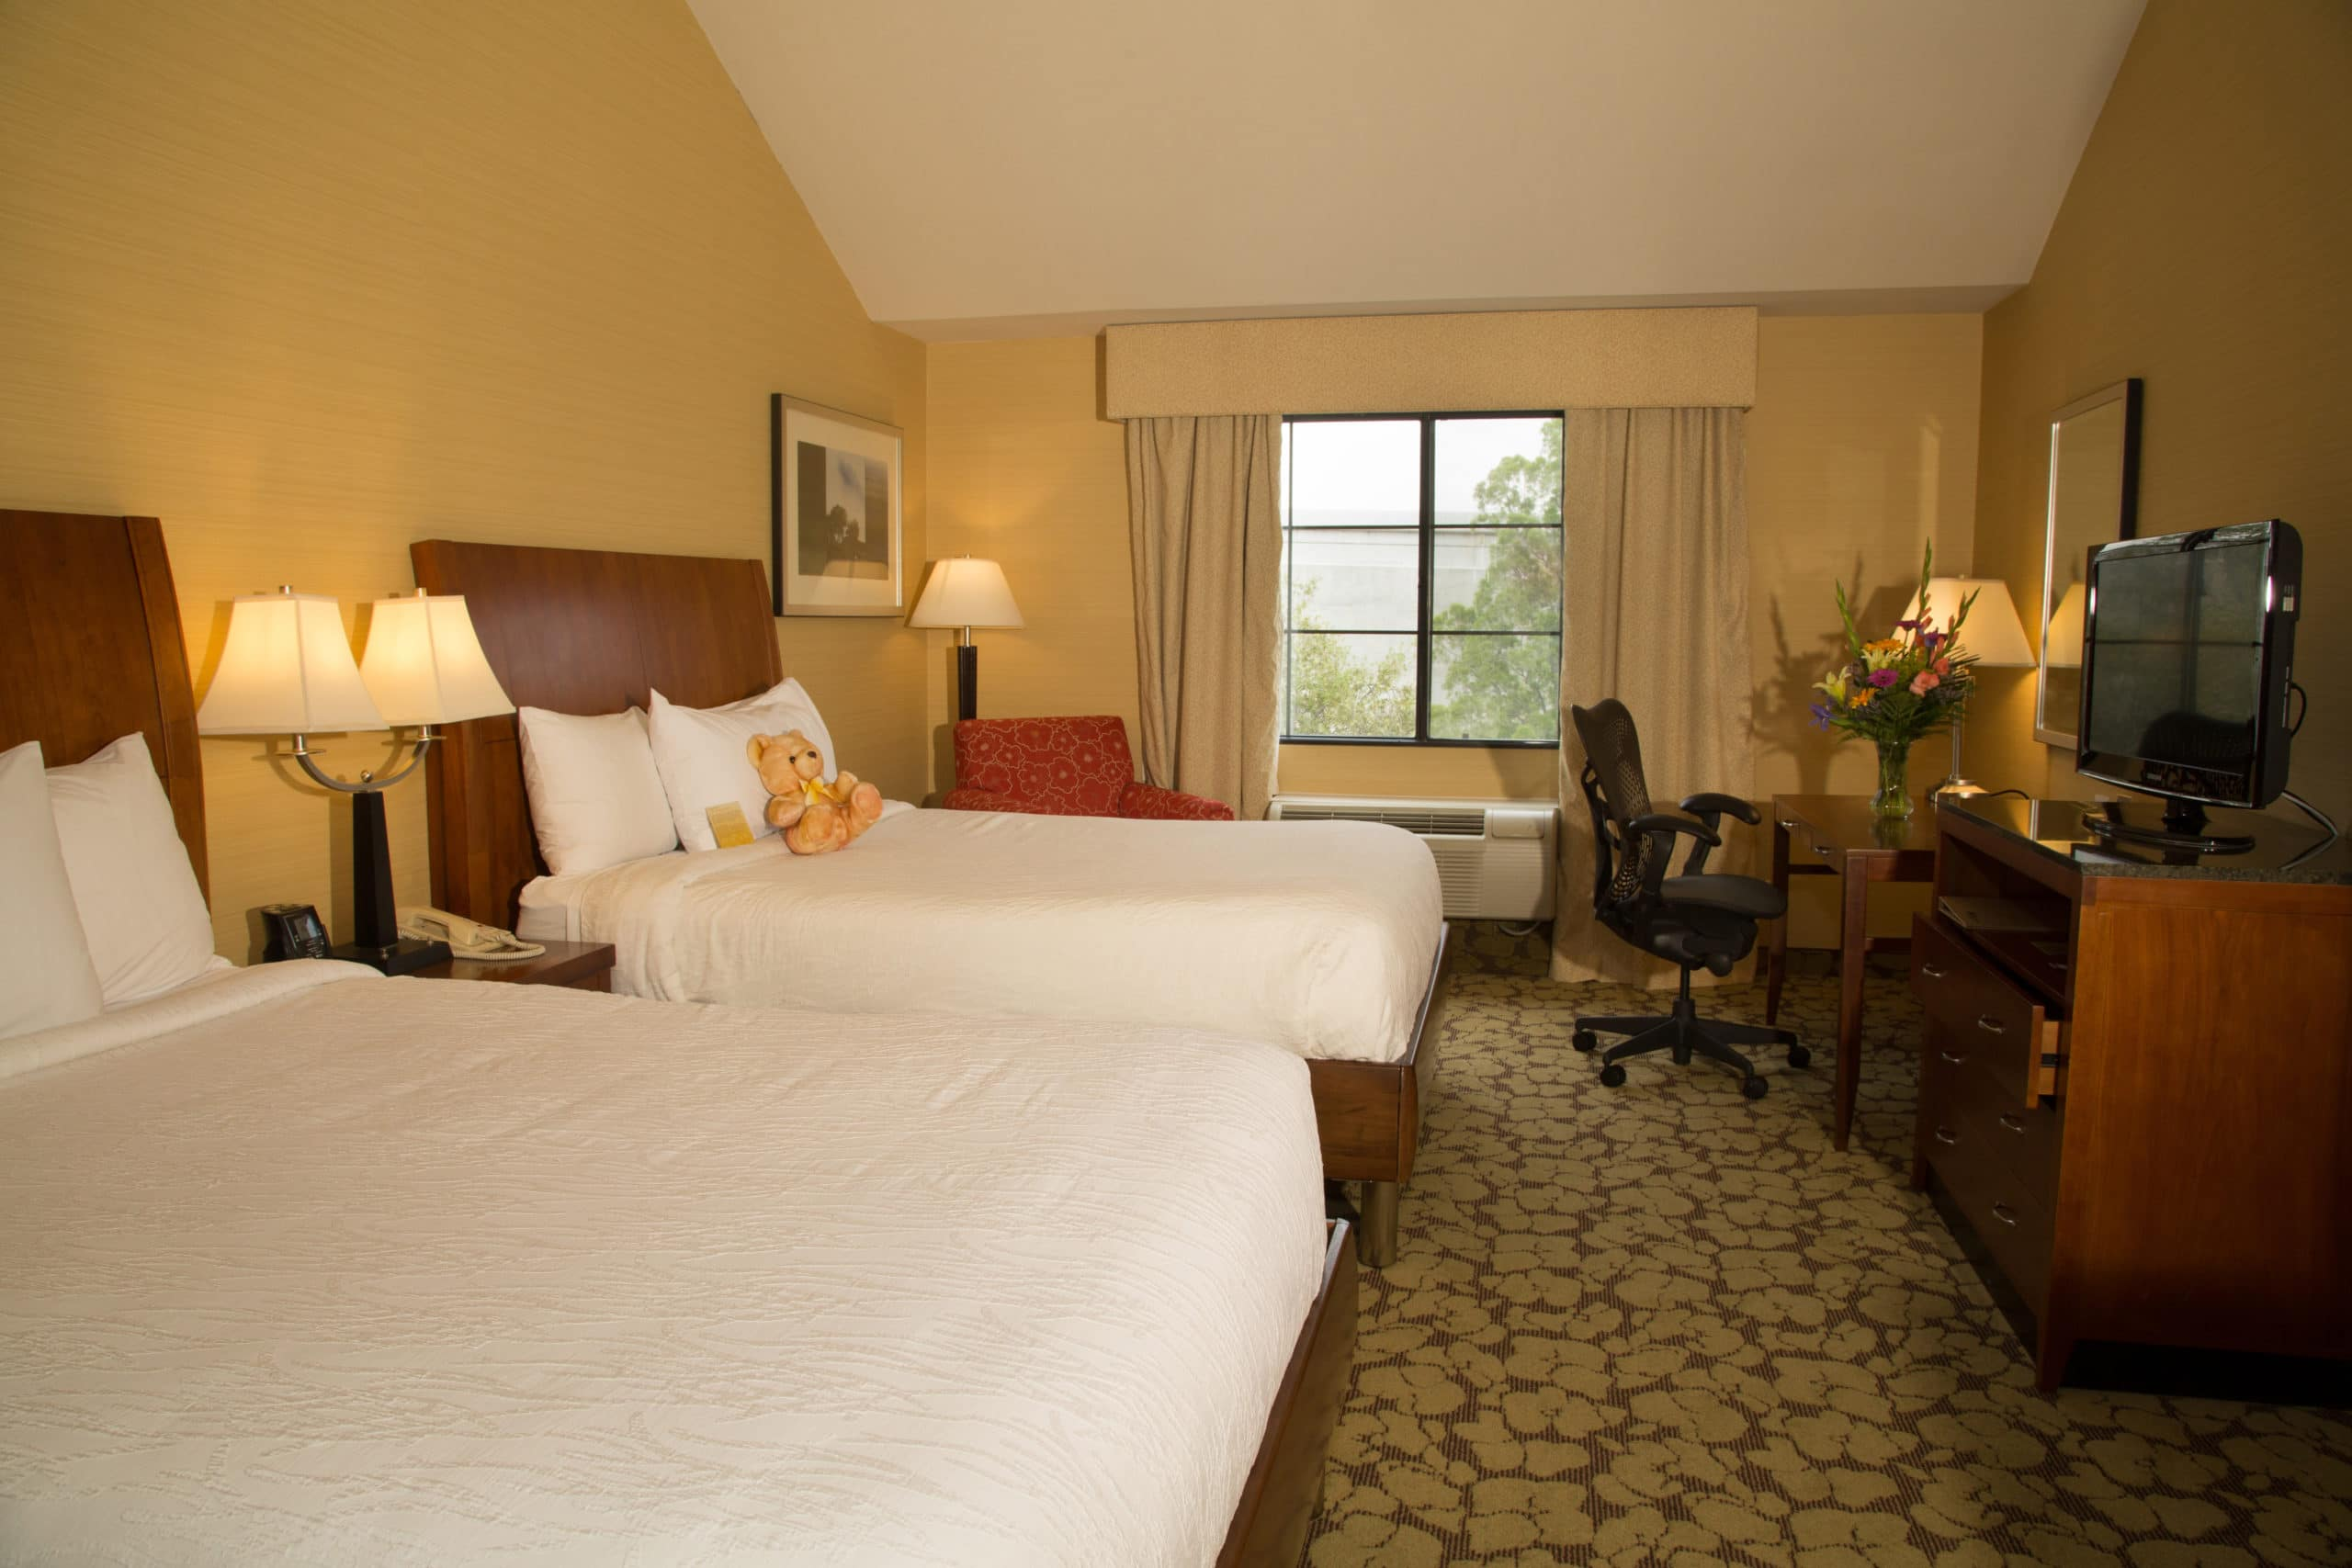 A double room interior in neutral colors at Hilton Garden Inn Valencia, one of our top picks for Six Flags Magic Mountain hotels.